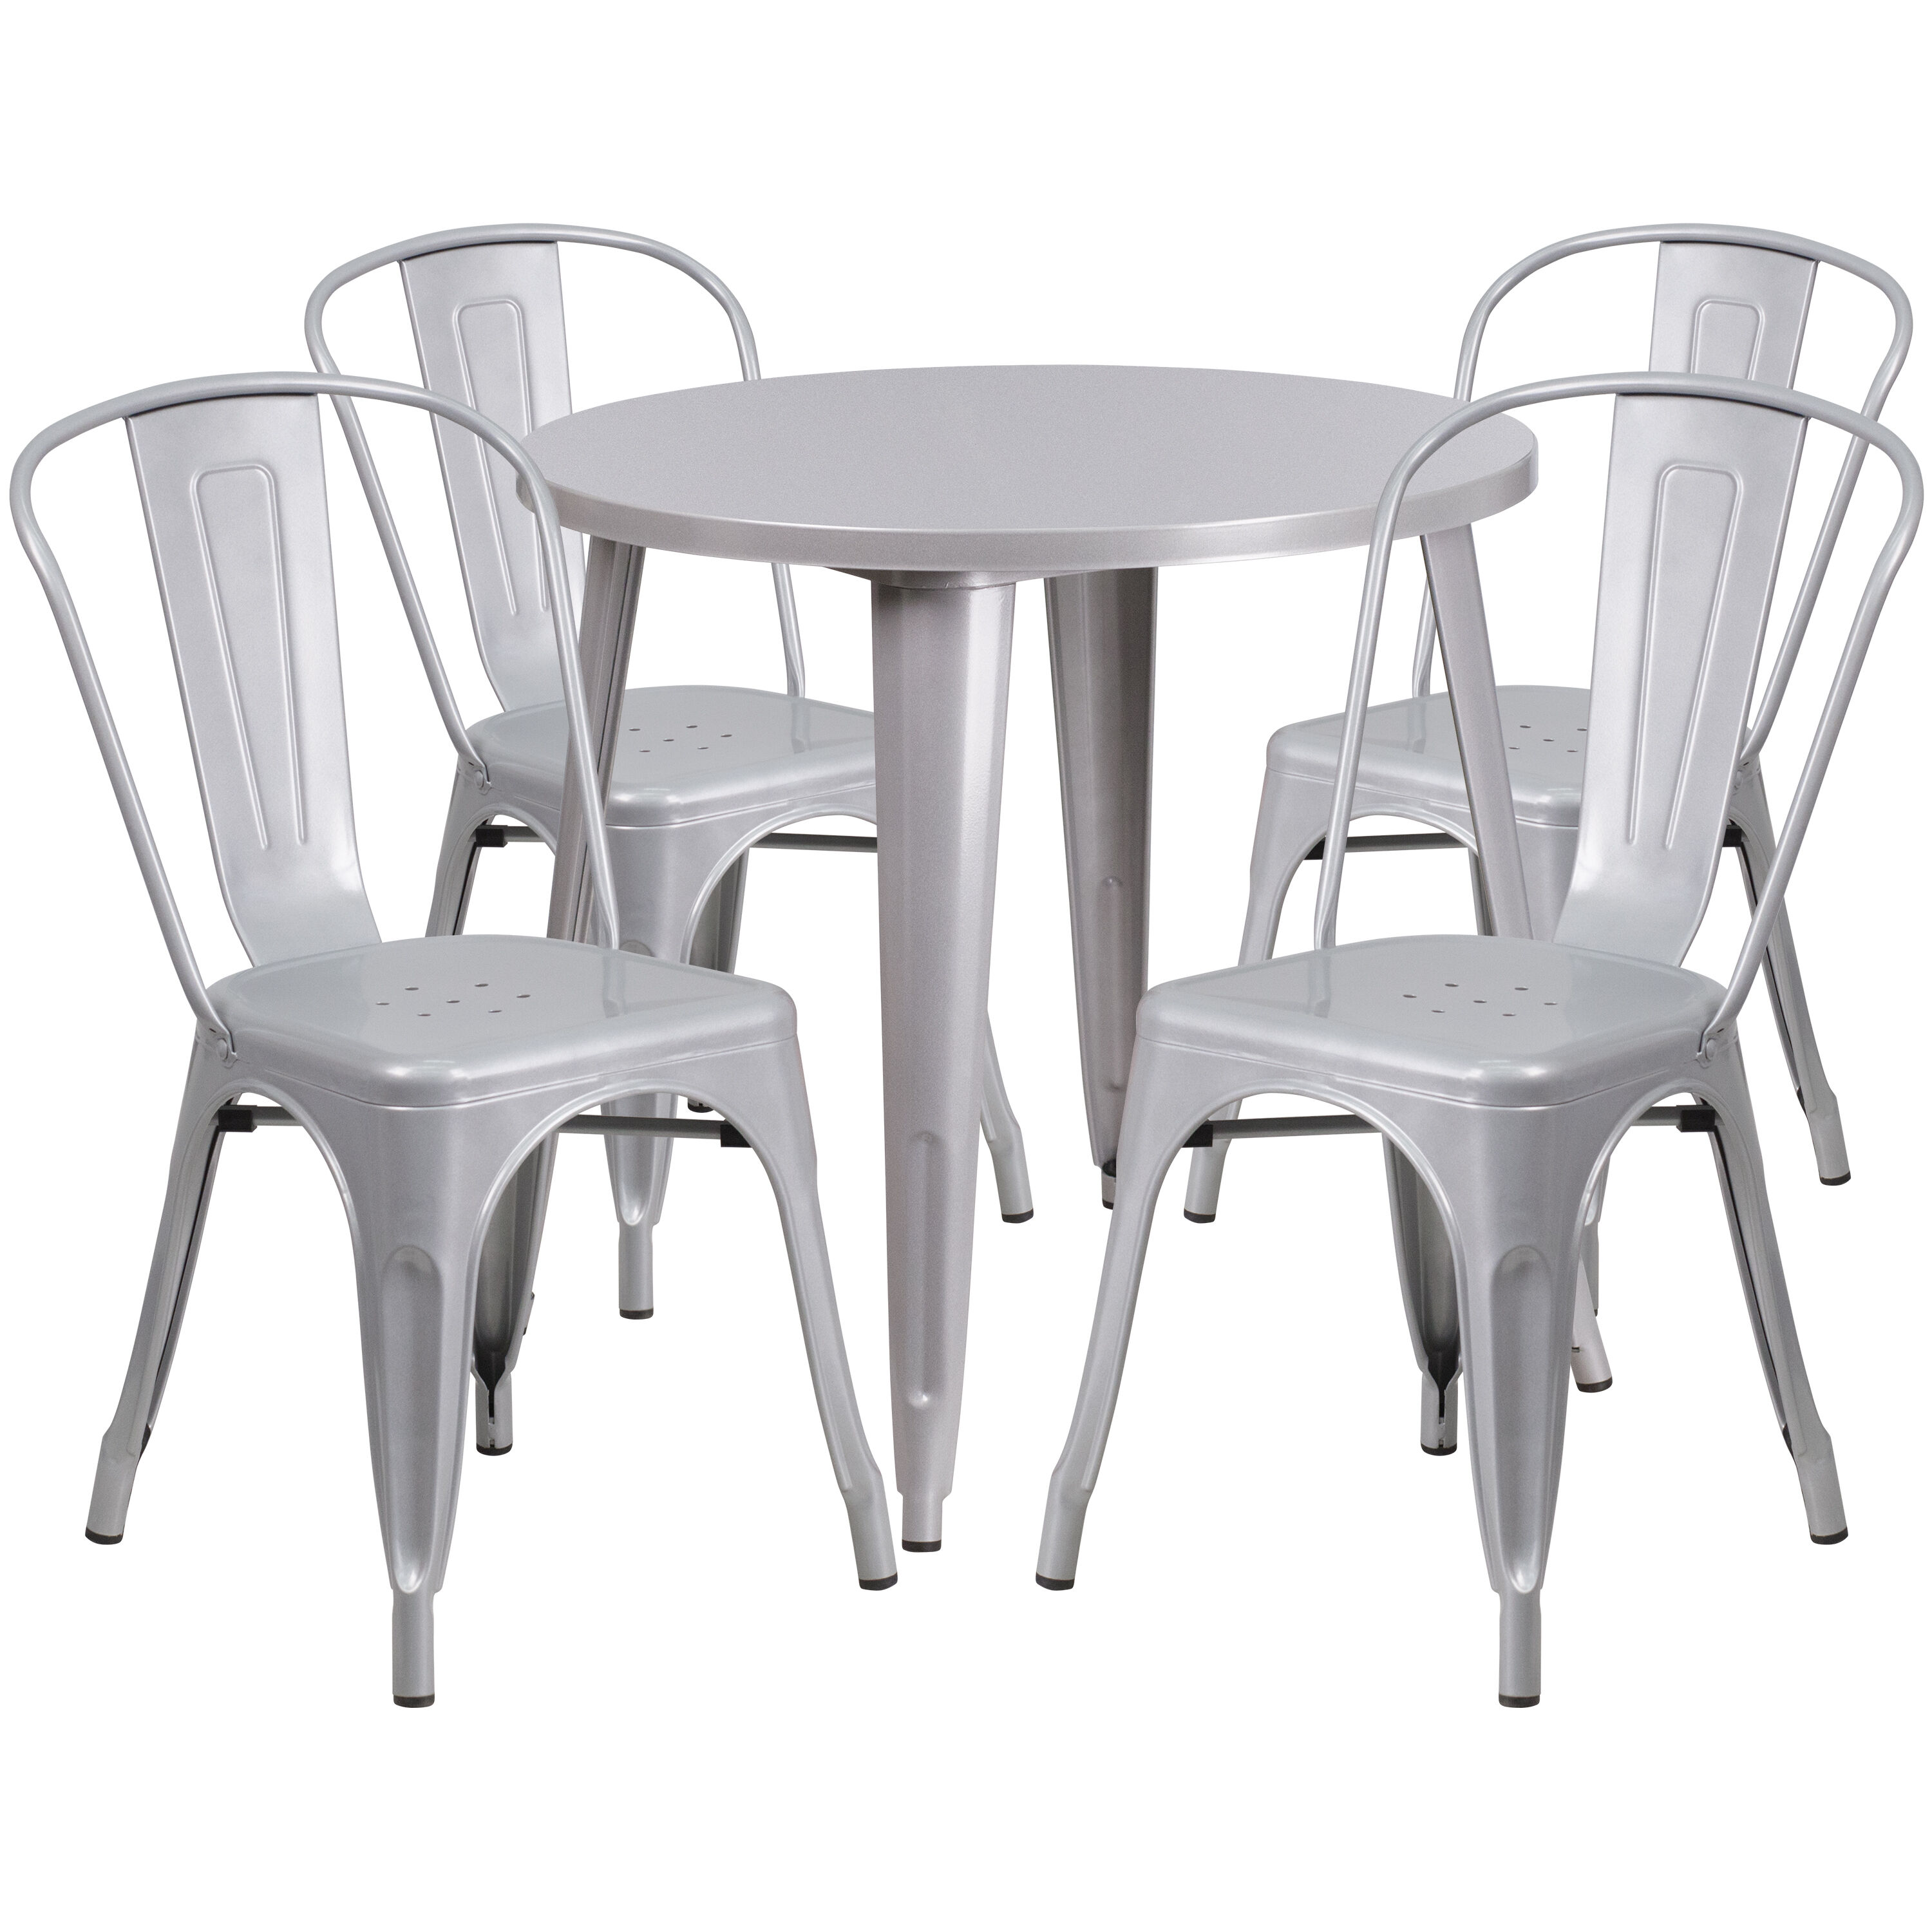 Etonnant ... Our 30u0027u0027 Round Silver Metal Indoor Outdoor Table Set With 4 Cafe Chairs